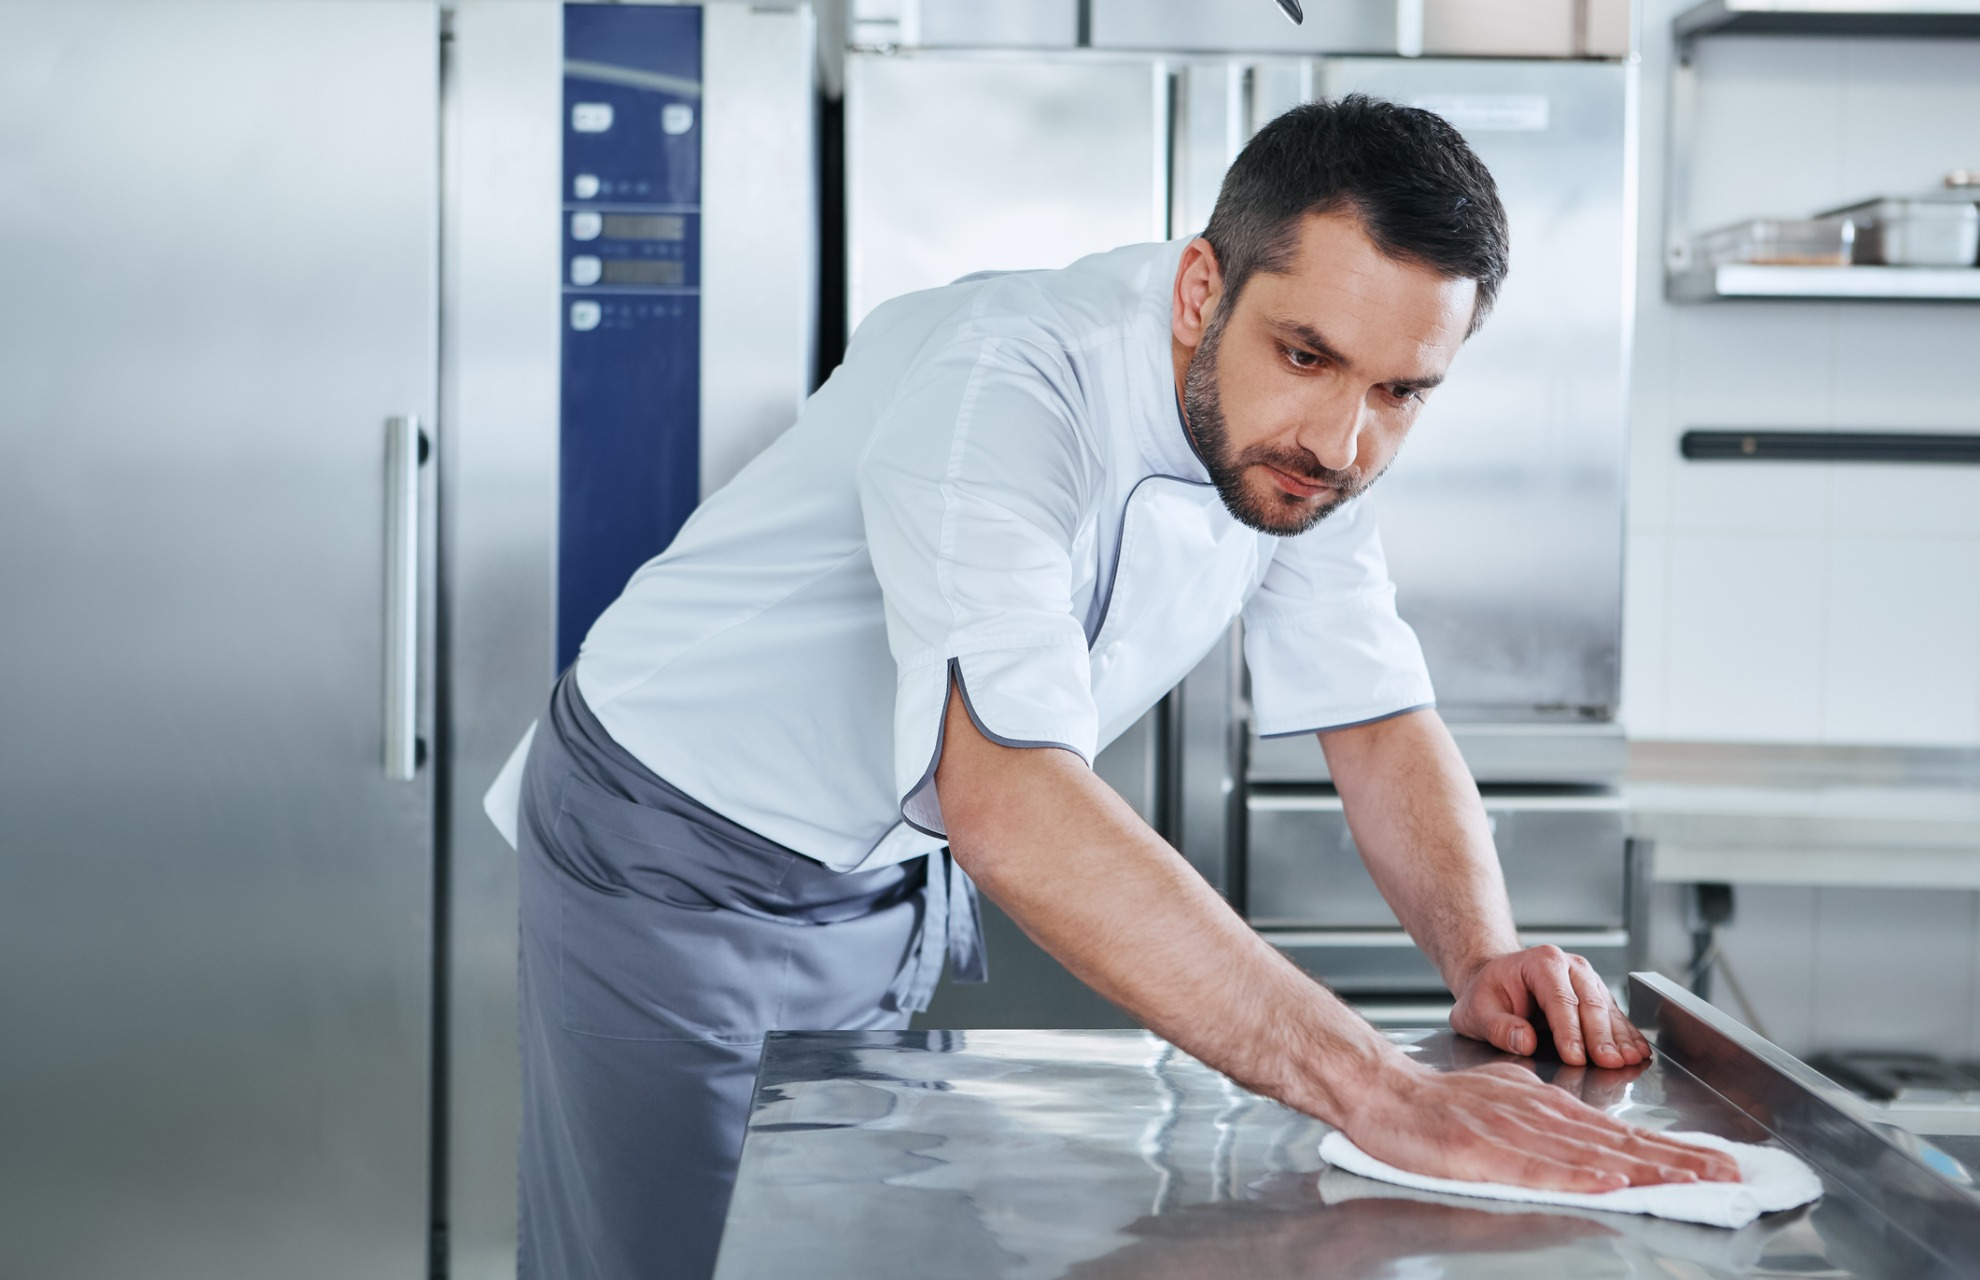 Chef Cleaning Kitchen in uniform